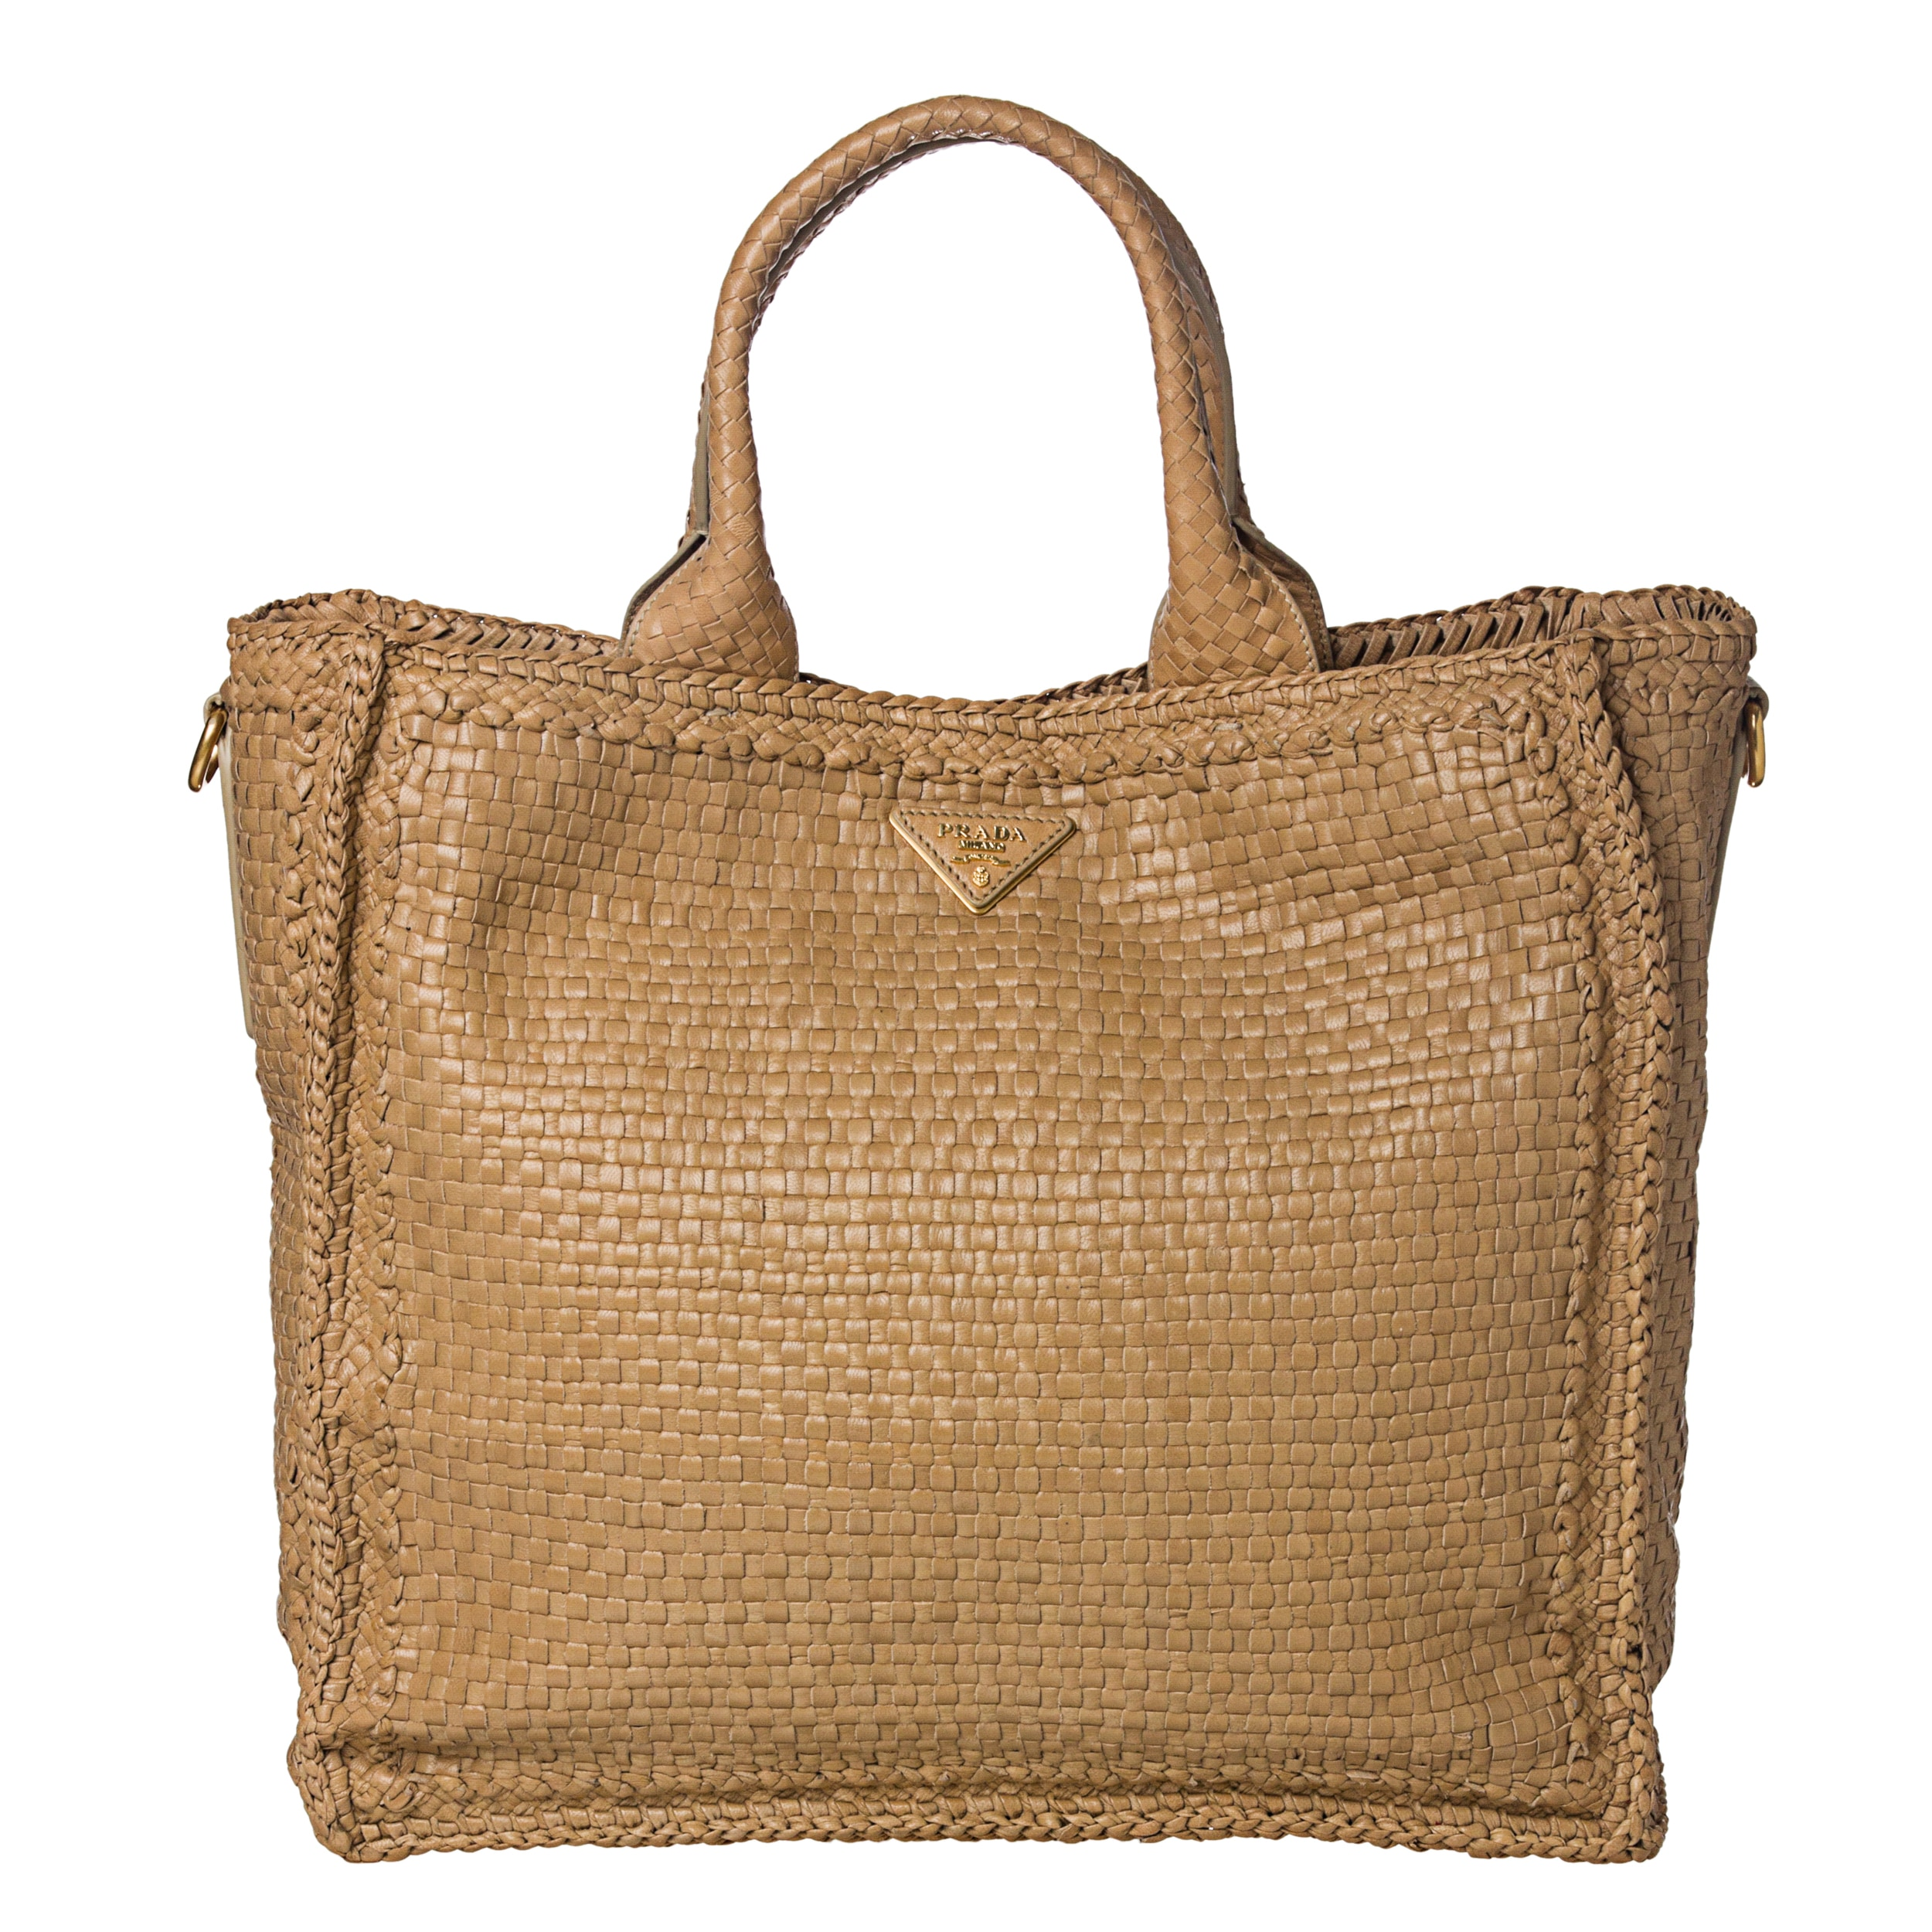 Prada Tan Woven Madras Leather Tote Bag